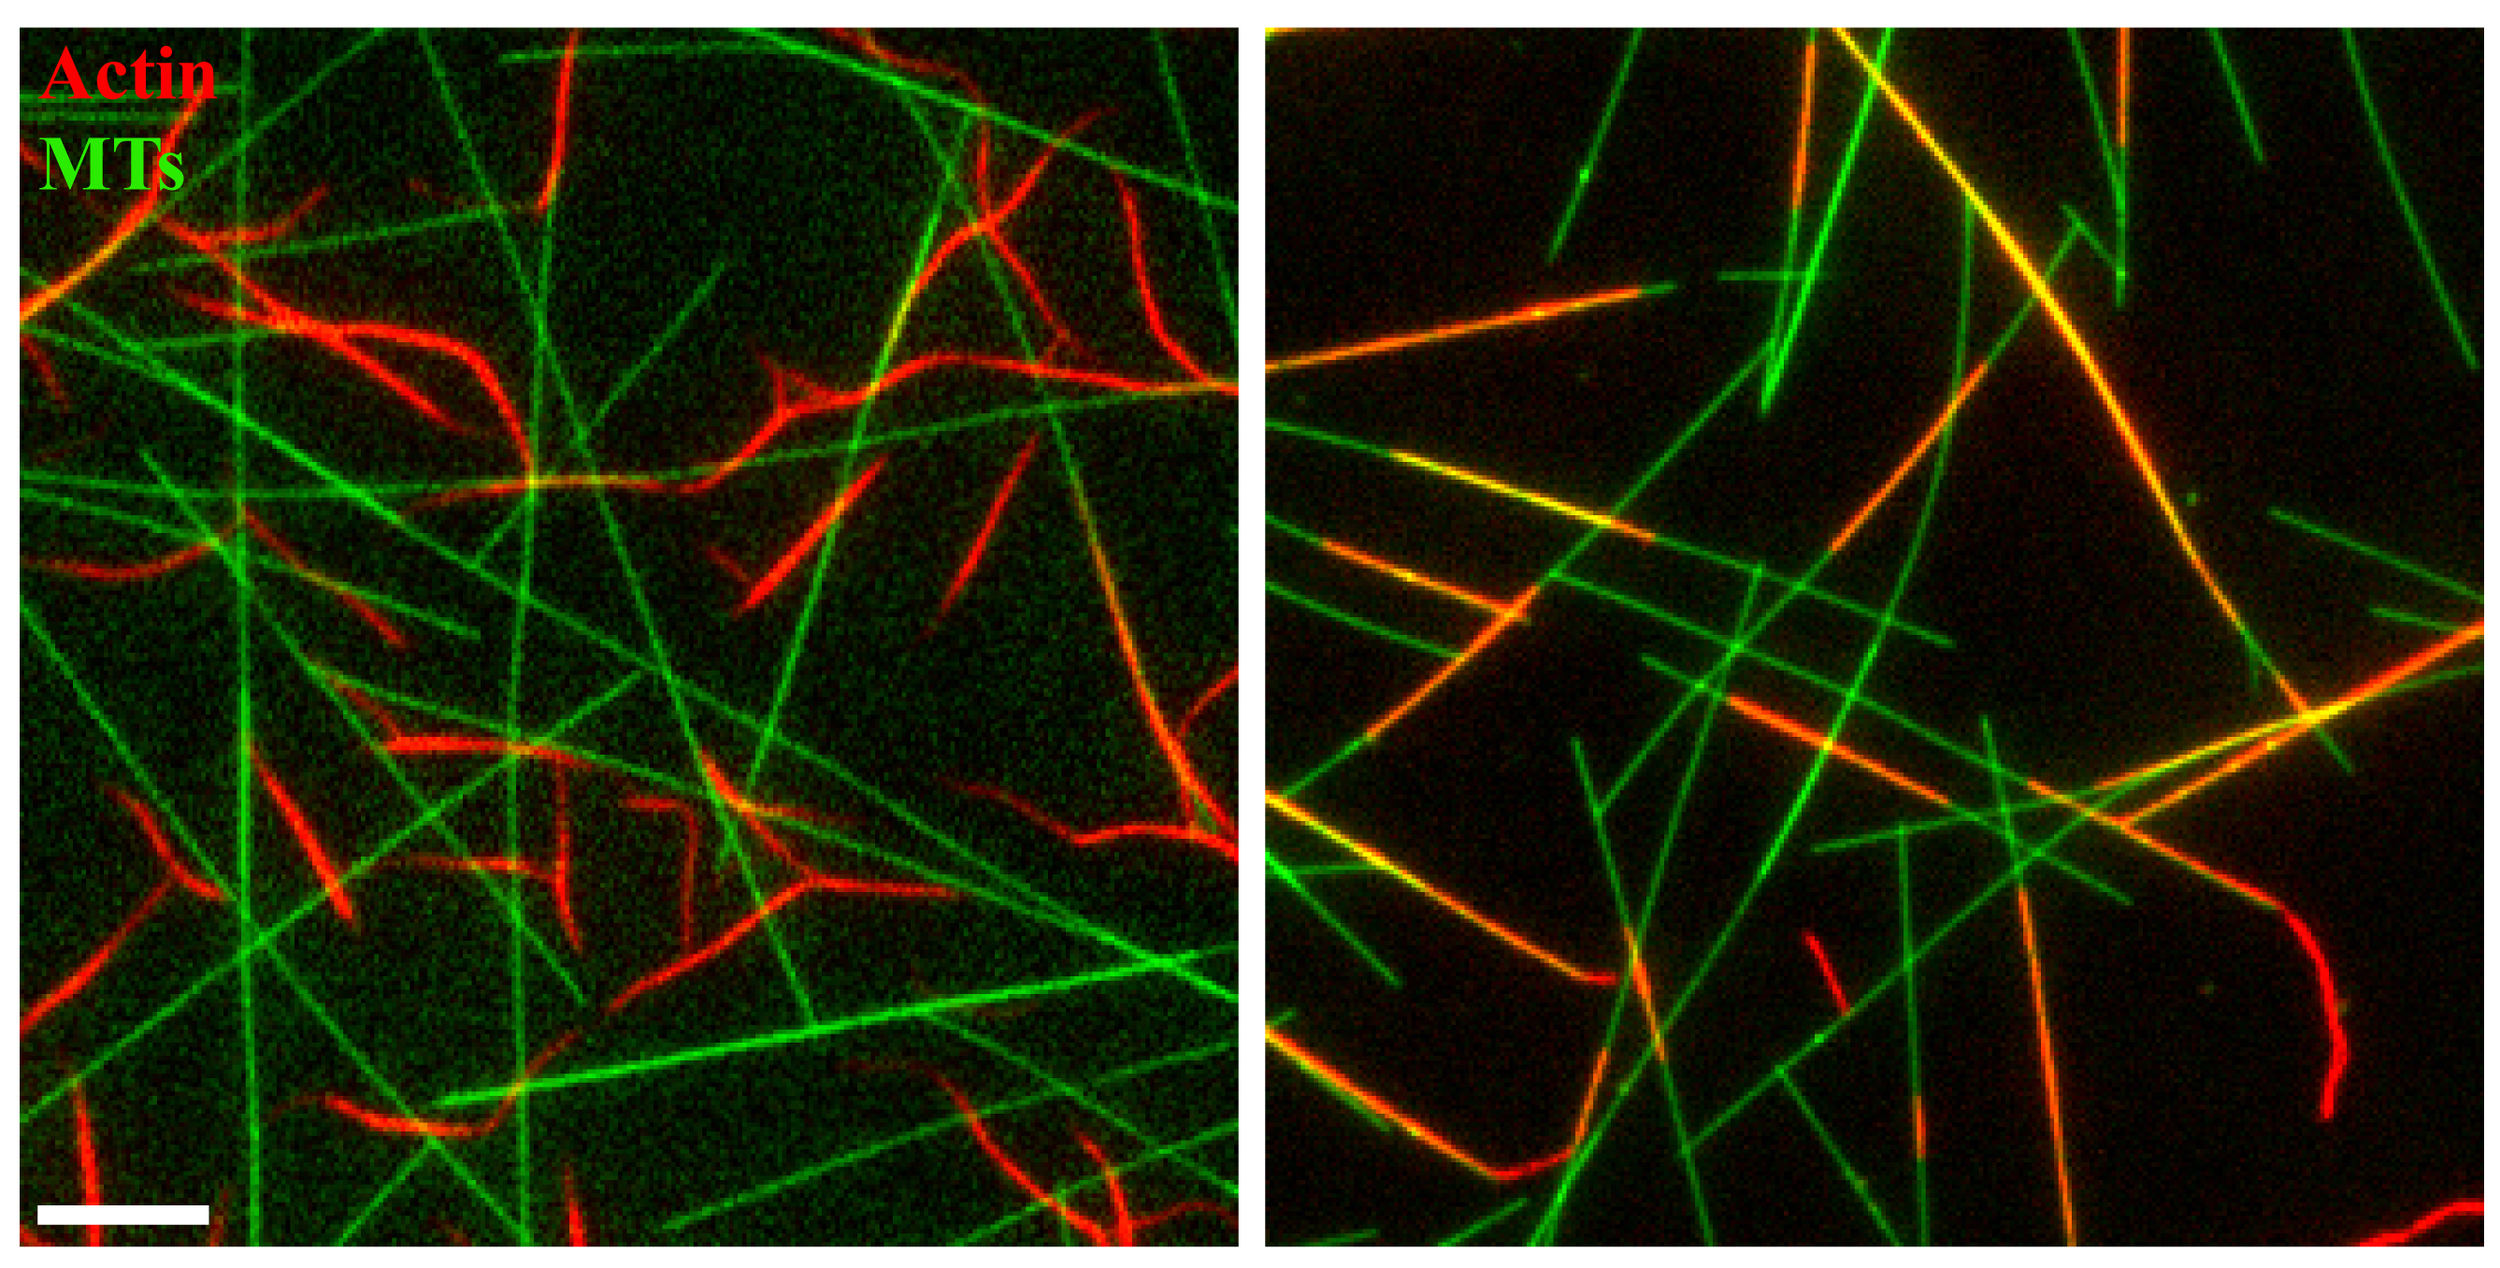 Fluorescent labelling of actin and microtubules with fascin on the left and tau on the right.